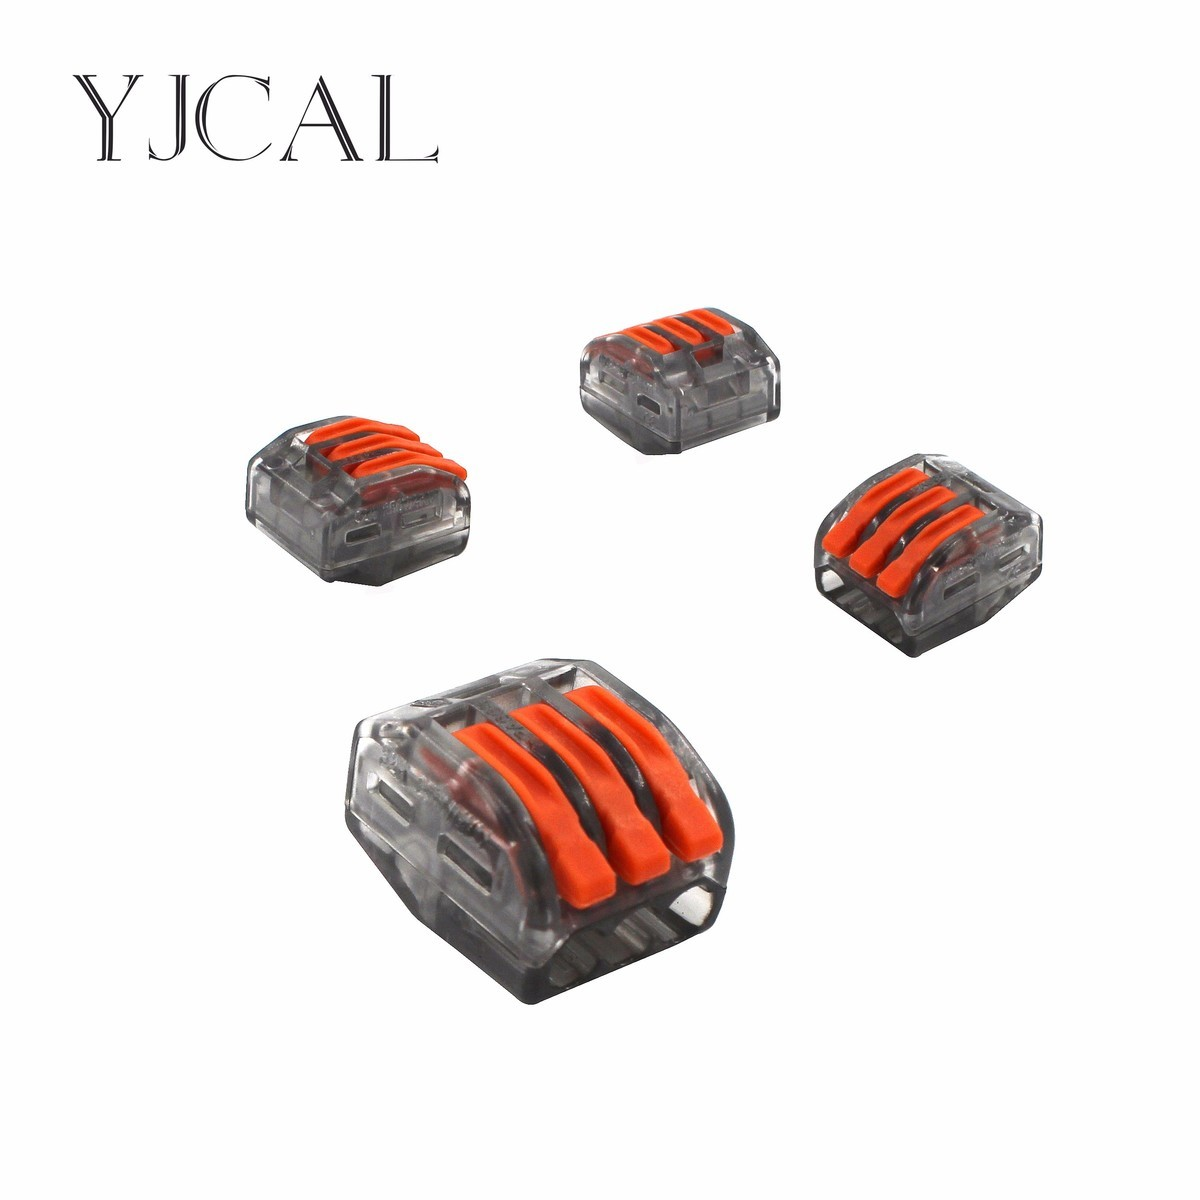 Wago Type 222-413 30PCS Universal Compact Wiring Conector Terminal Block Connectors Terminator Wire Connector AWG 28-12 10 pieces lot 222 413 universal compact wire wiring connector 3 pin conductor terminal block with lever awg 28 12